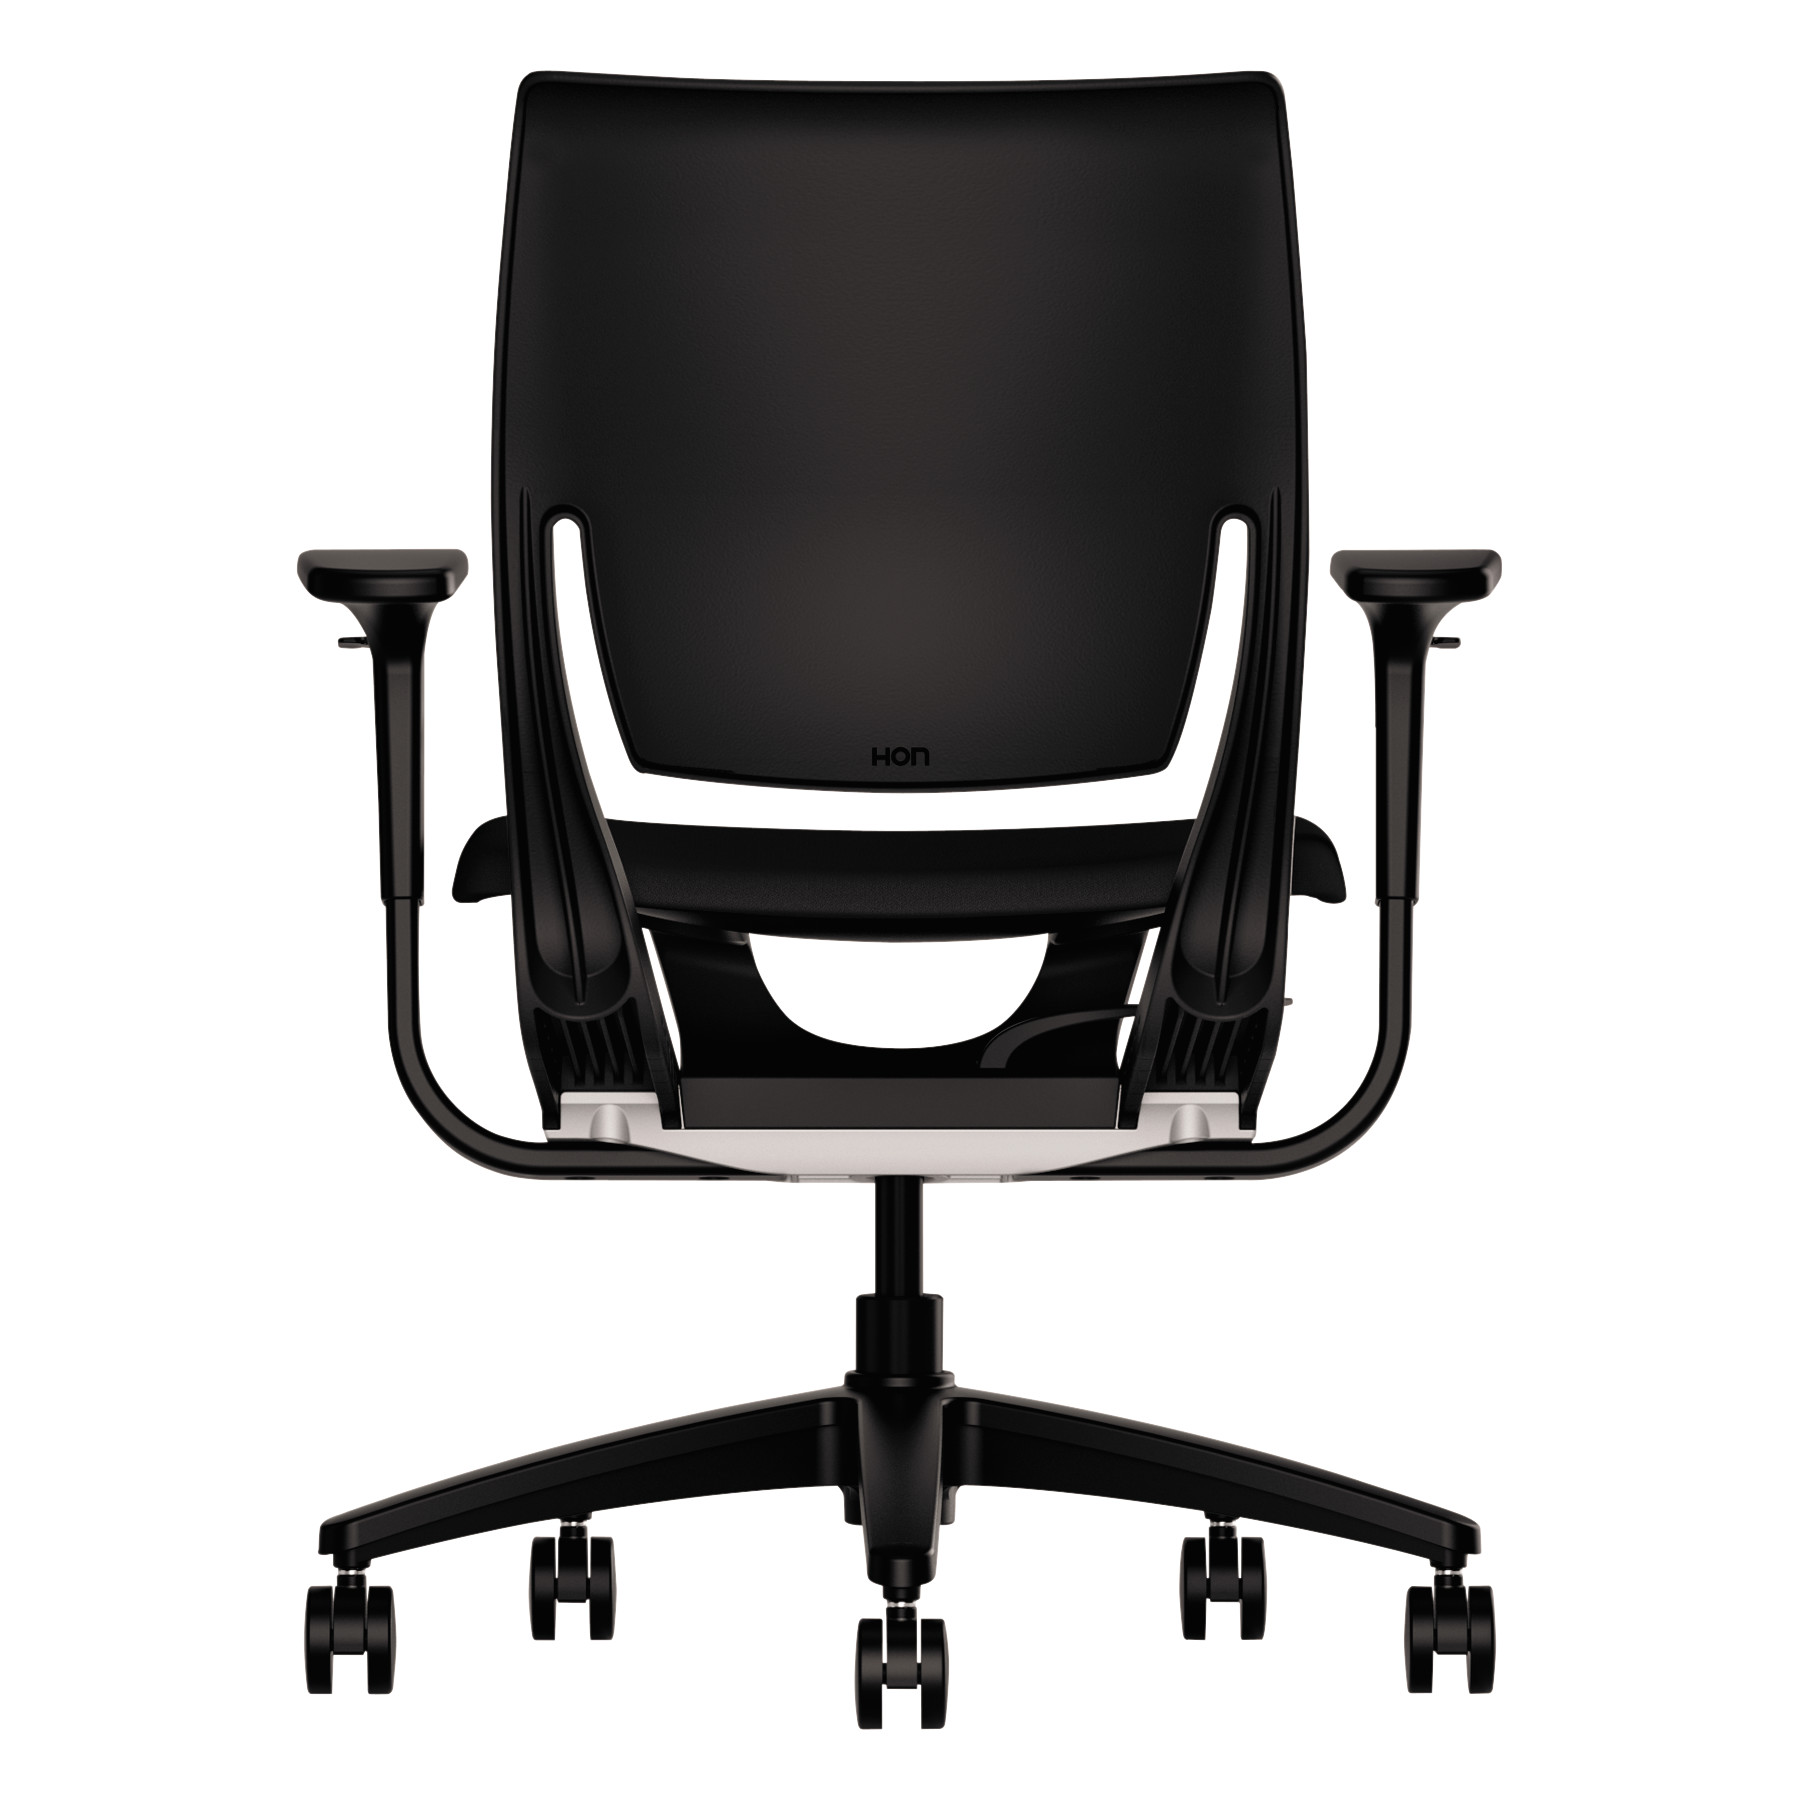 HON Purpose Upholstered Flexing Task Chair Black Black Walmart